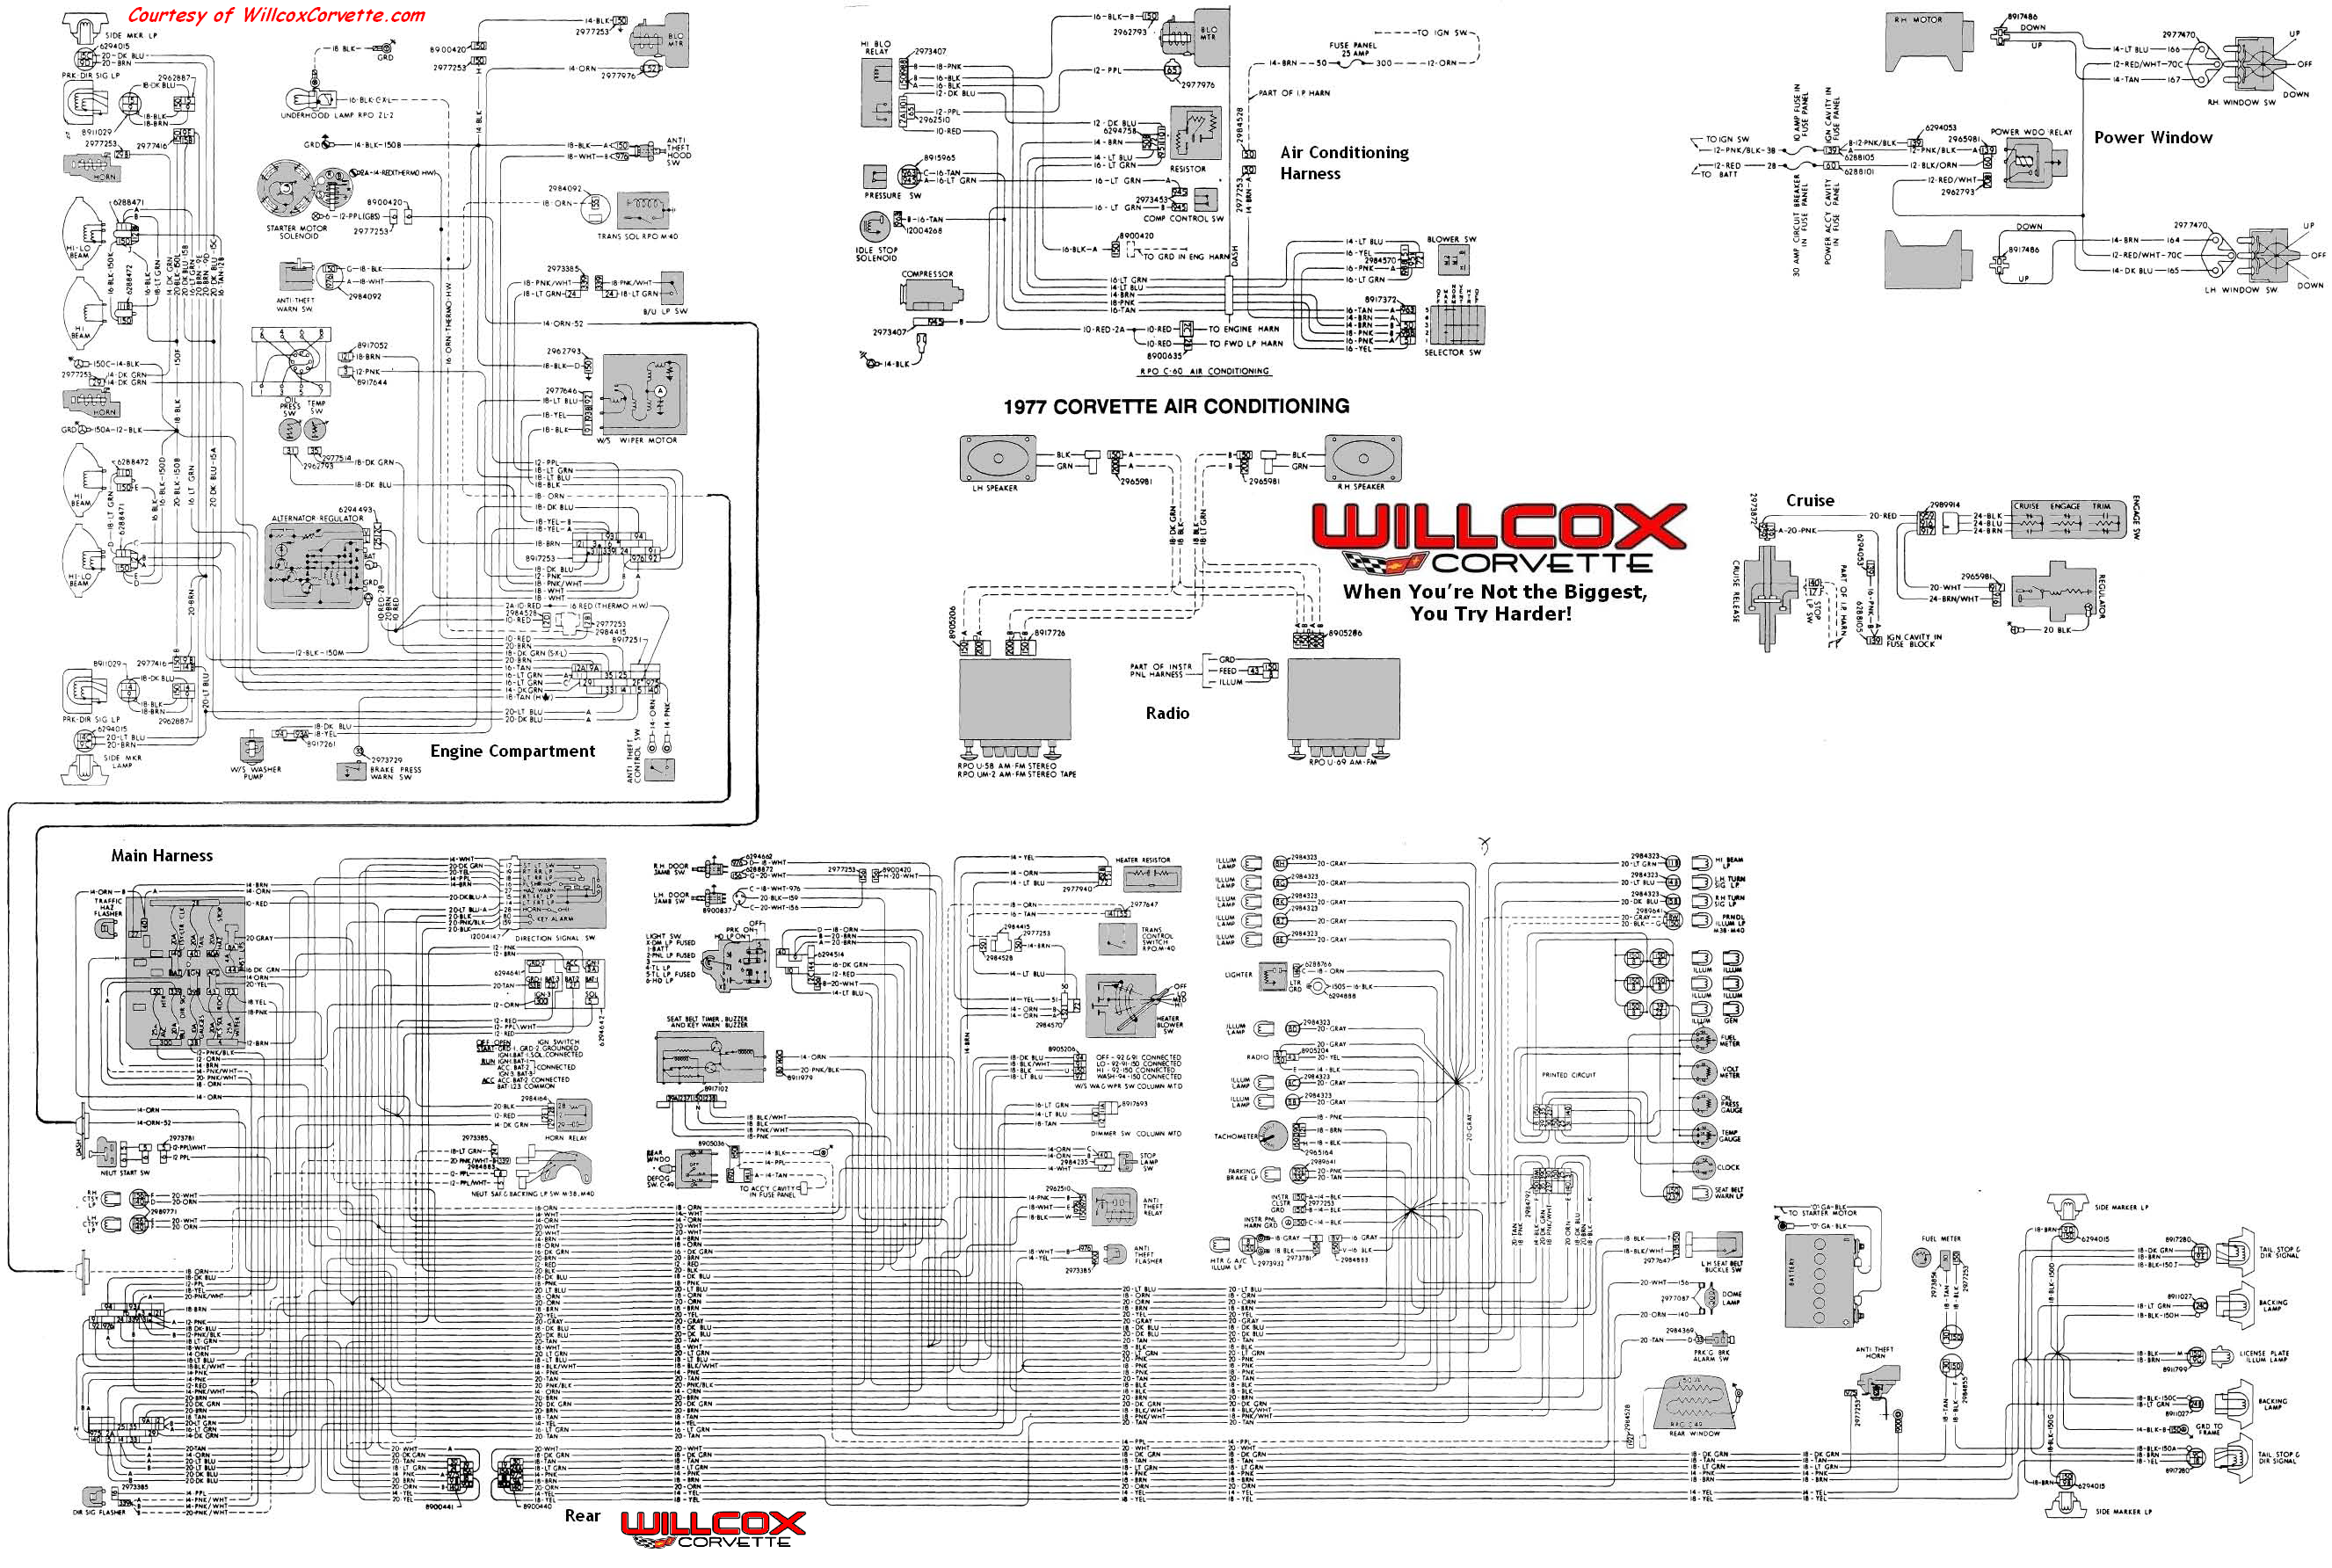 77 corvette wire schematic tracer 1980 corvette wiring diagram 77 corvette wiring diagram \u2022 wiring 65 corvette wiring diagram at soozxer.org